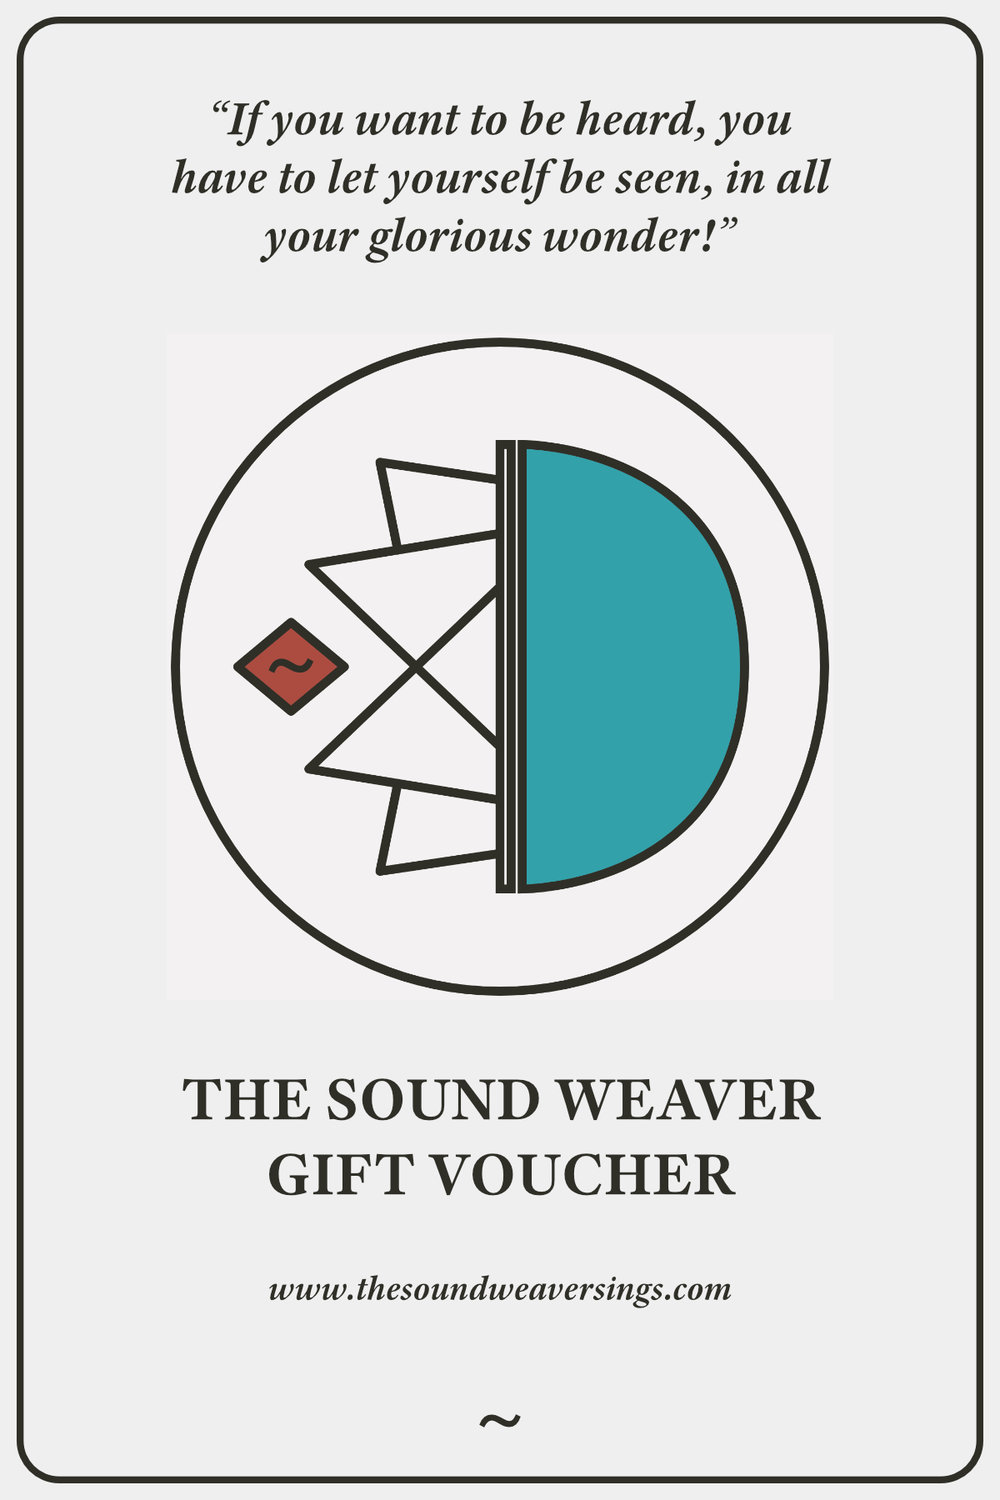 Buy Now - Sound Weaving Gift Voucher